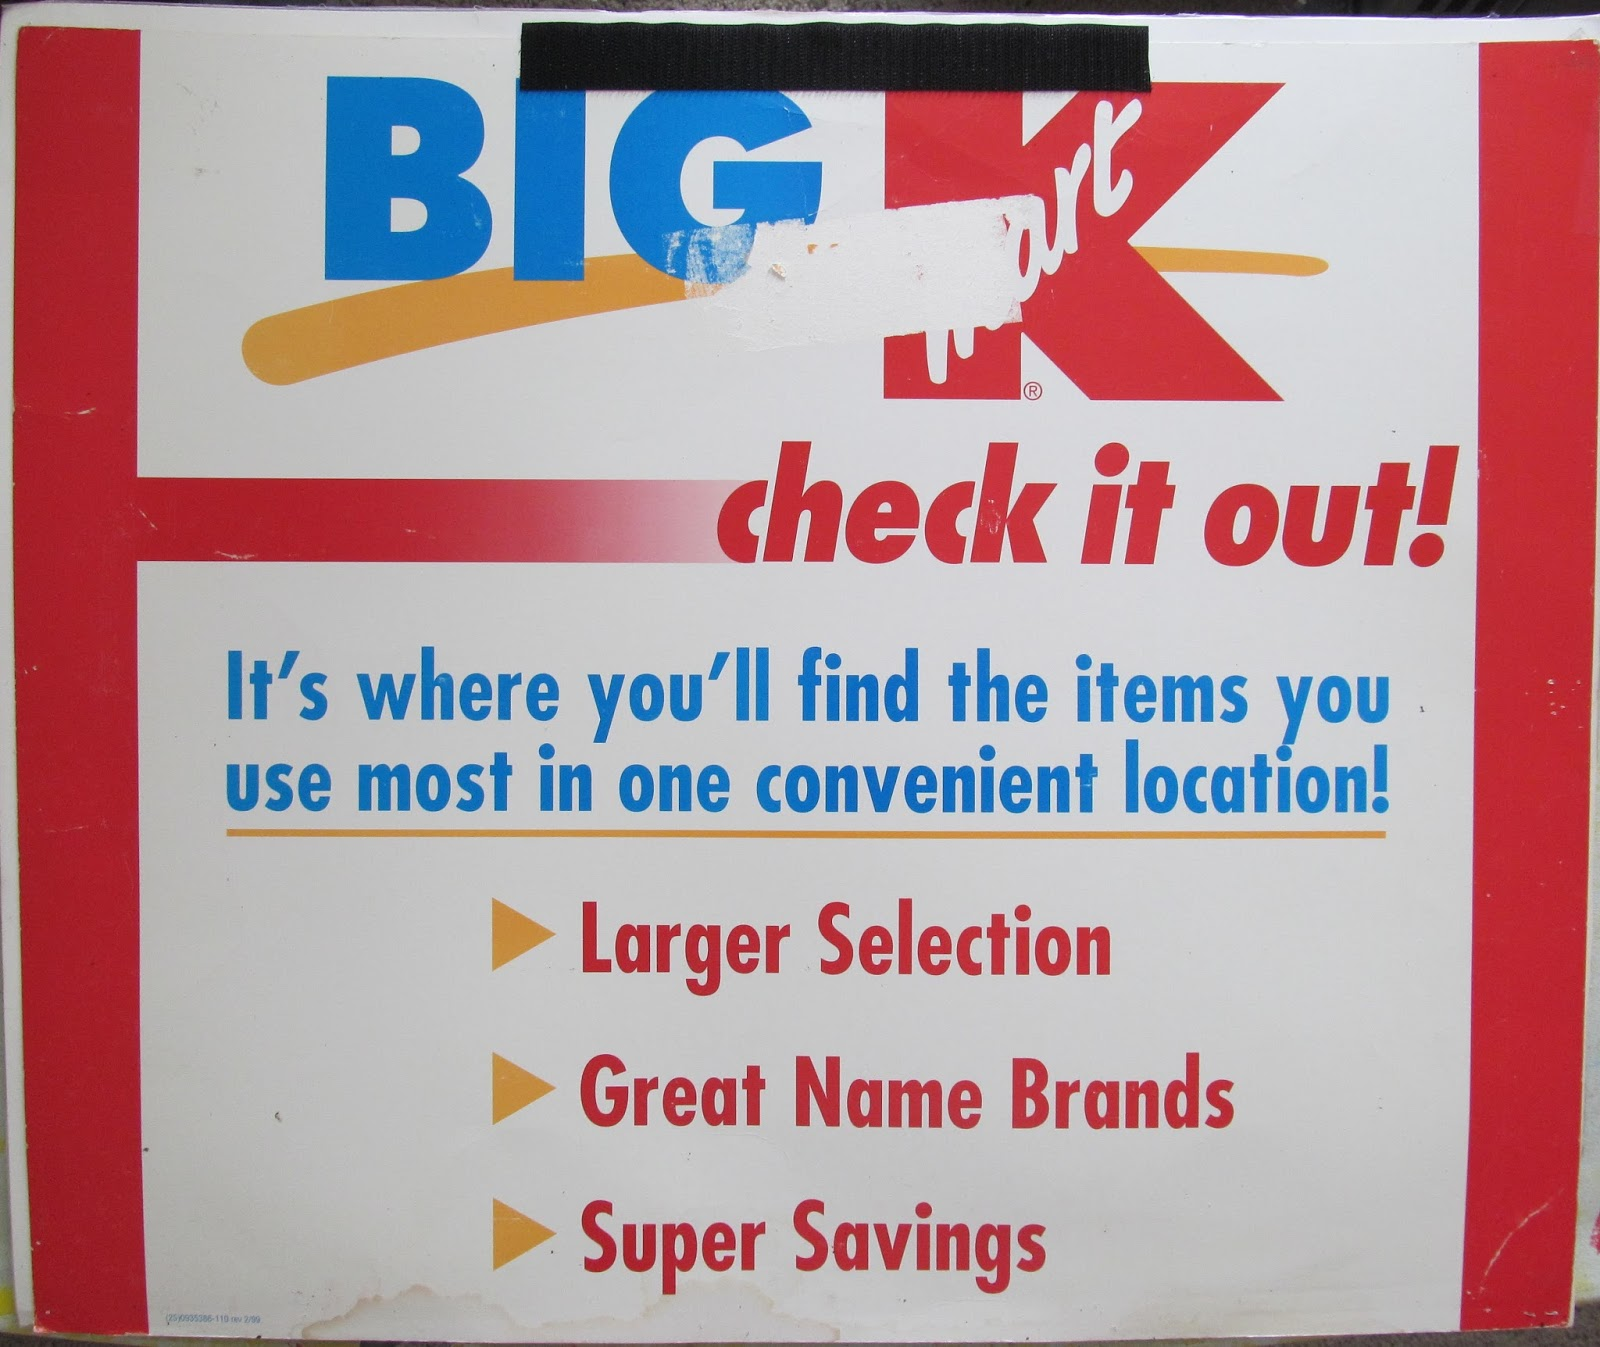 Trip to the Mall: FIND: Old Super Kmart Center Floor Map Kmart Location Map on kmart locations new york, meijer locations map, kmart cafe menu, walmart locations map, kmart restaurant, bank of america locations map, kmart contact information, kmart products, kmart sale flyer, kmart locations in az, kmart hours, kmart floor plan, kmart employment, kmart locations in texas,